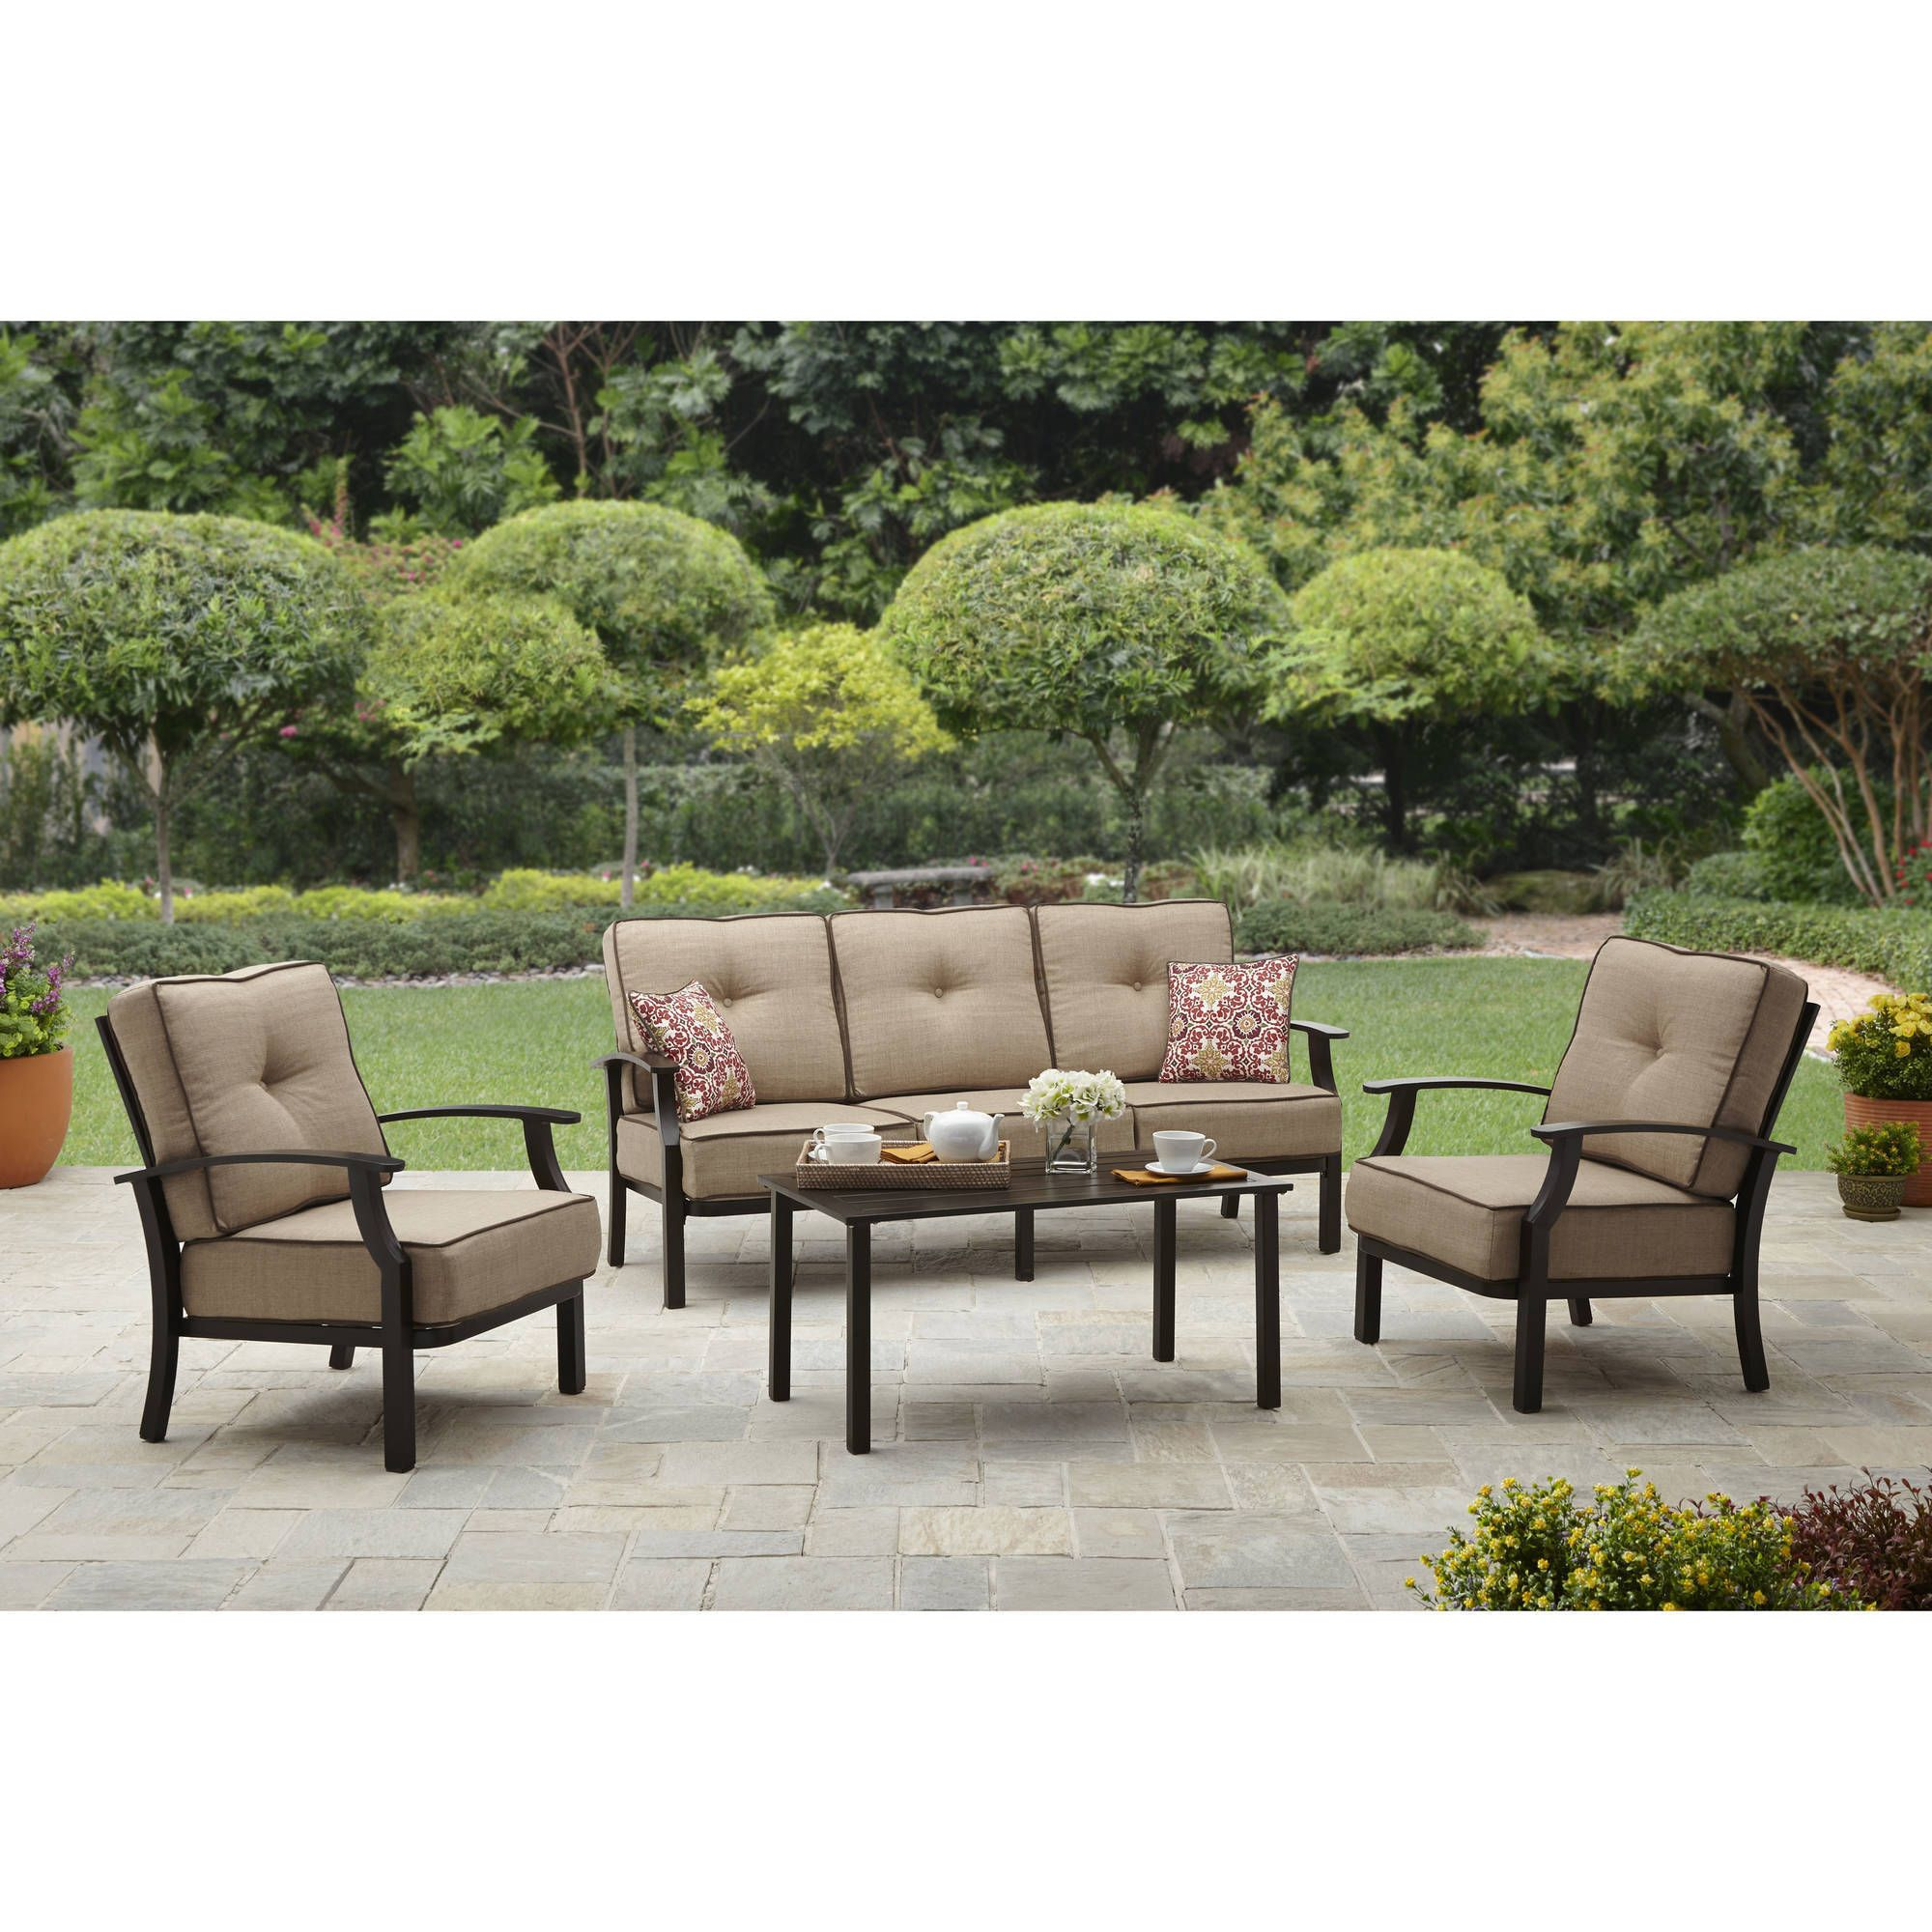 503fc724b27ffbc2c5e418c4faf351ce - Better Homes And Gardens Patio Furniture Englewood Heights